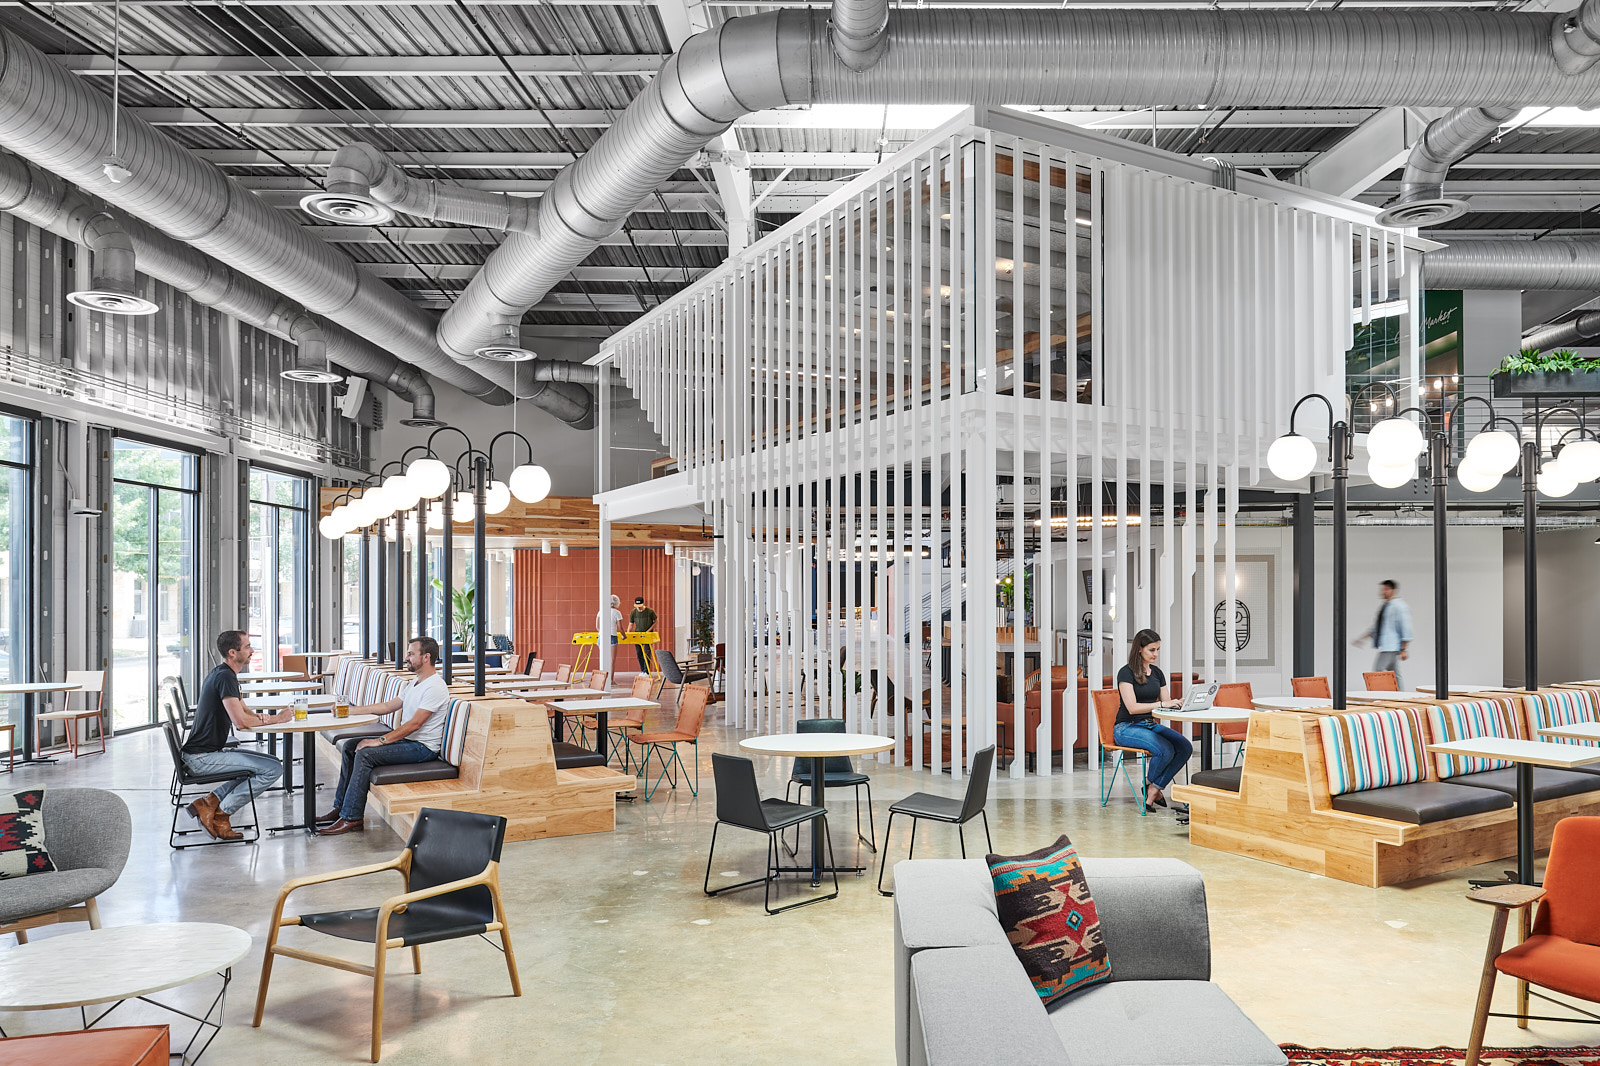 Photo of an industrial-contemporary office with modern furniture and open space